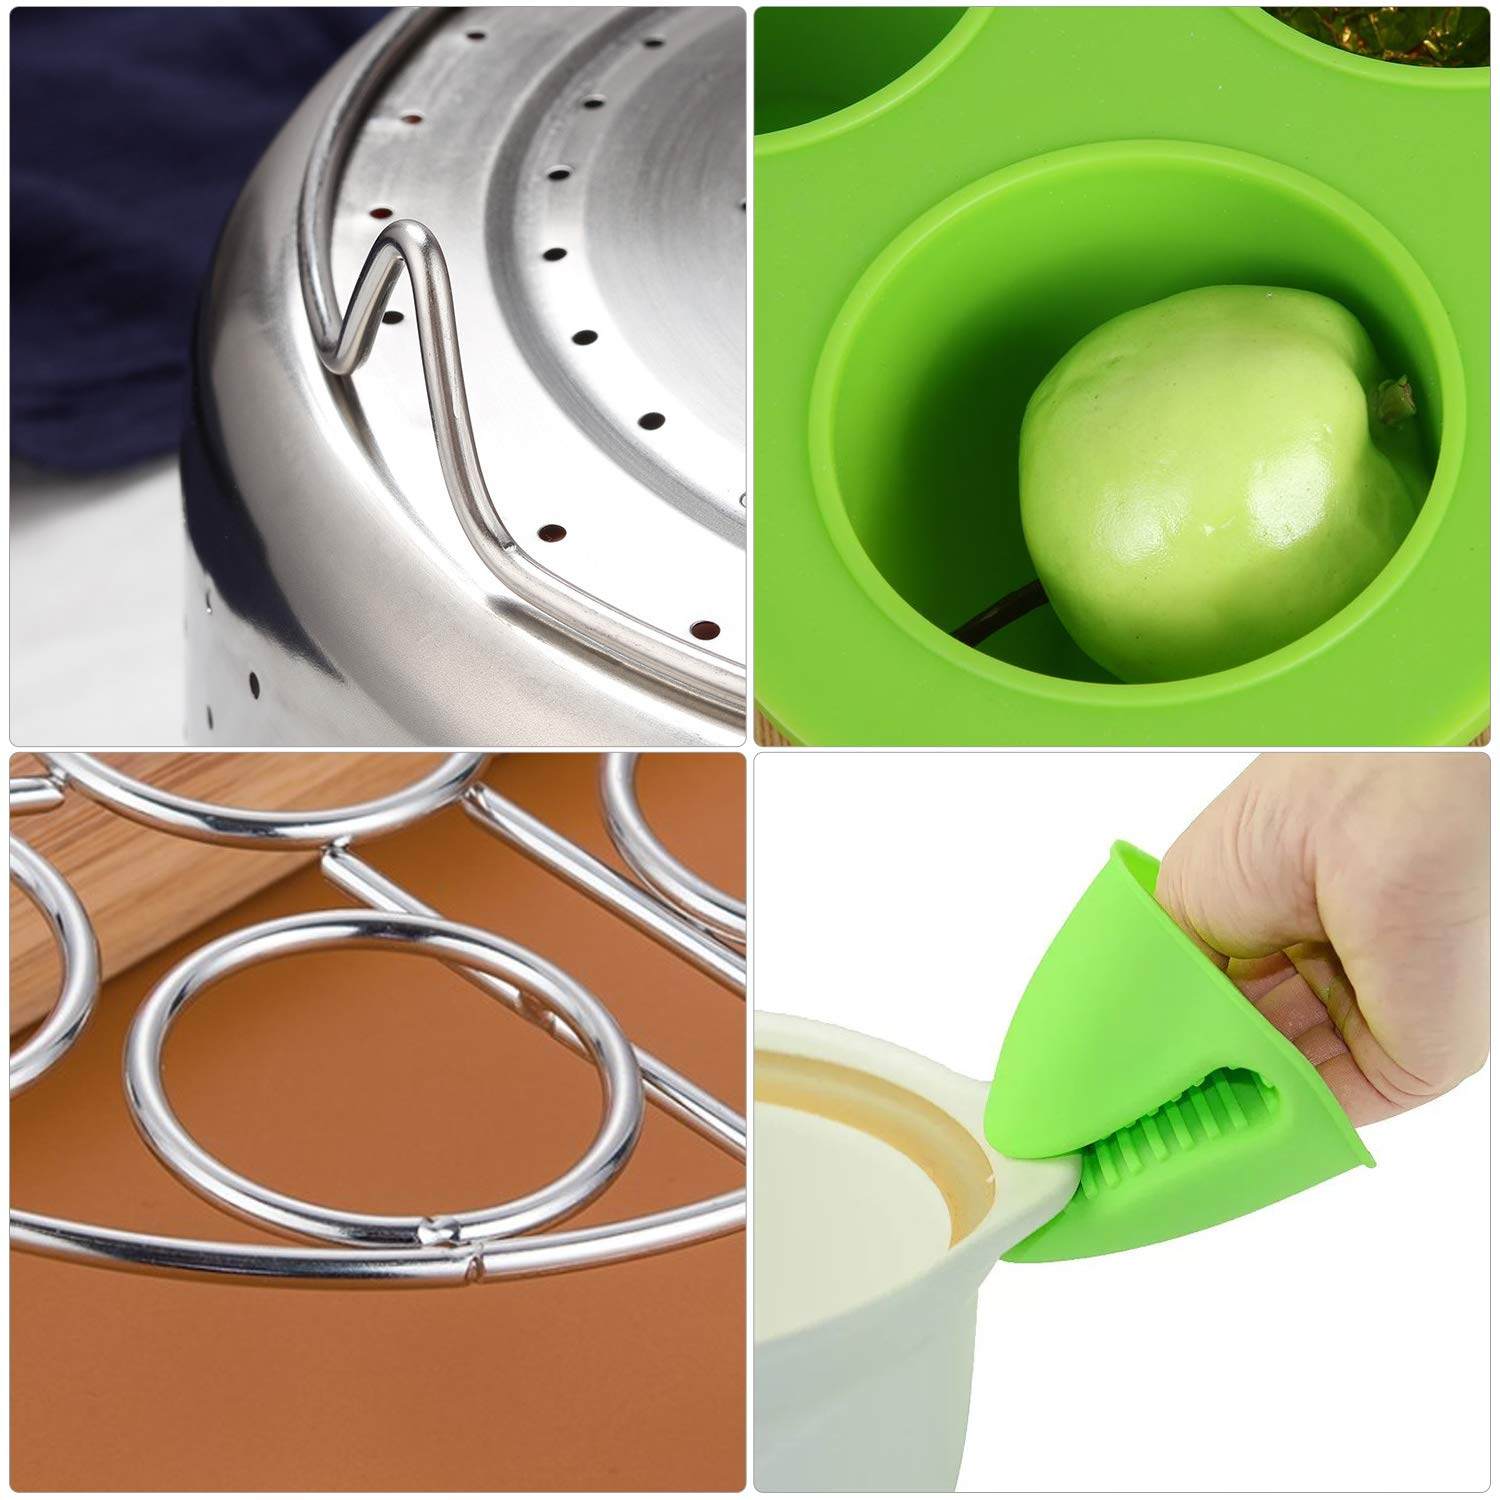 Cookware Accessories Egg Rack Silicone Egg Bites Mold Kitchen Tong Super Pdr Accessories Set Compatible With Instant Pot 6 8 Quart With Steamer Basket Springform Pan Magnetic Sheets Silicone Oven Mitts Dish Clamp Egg